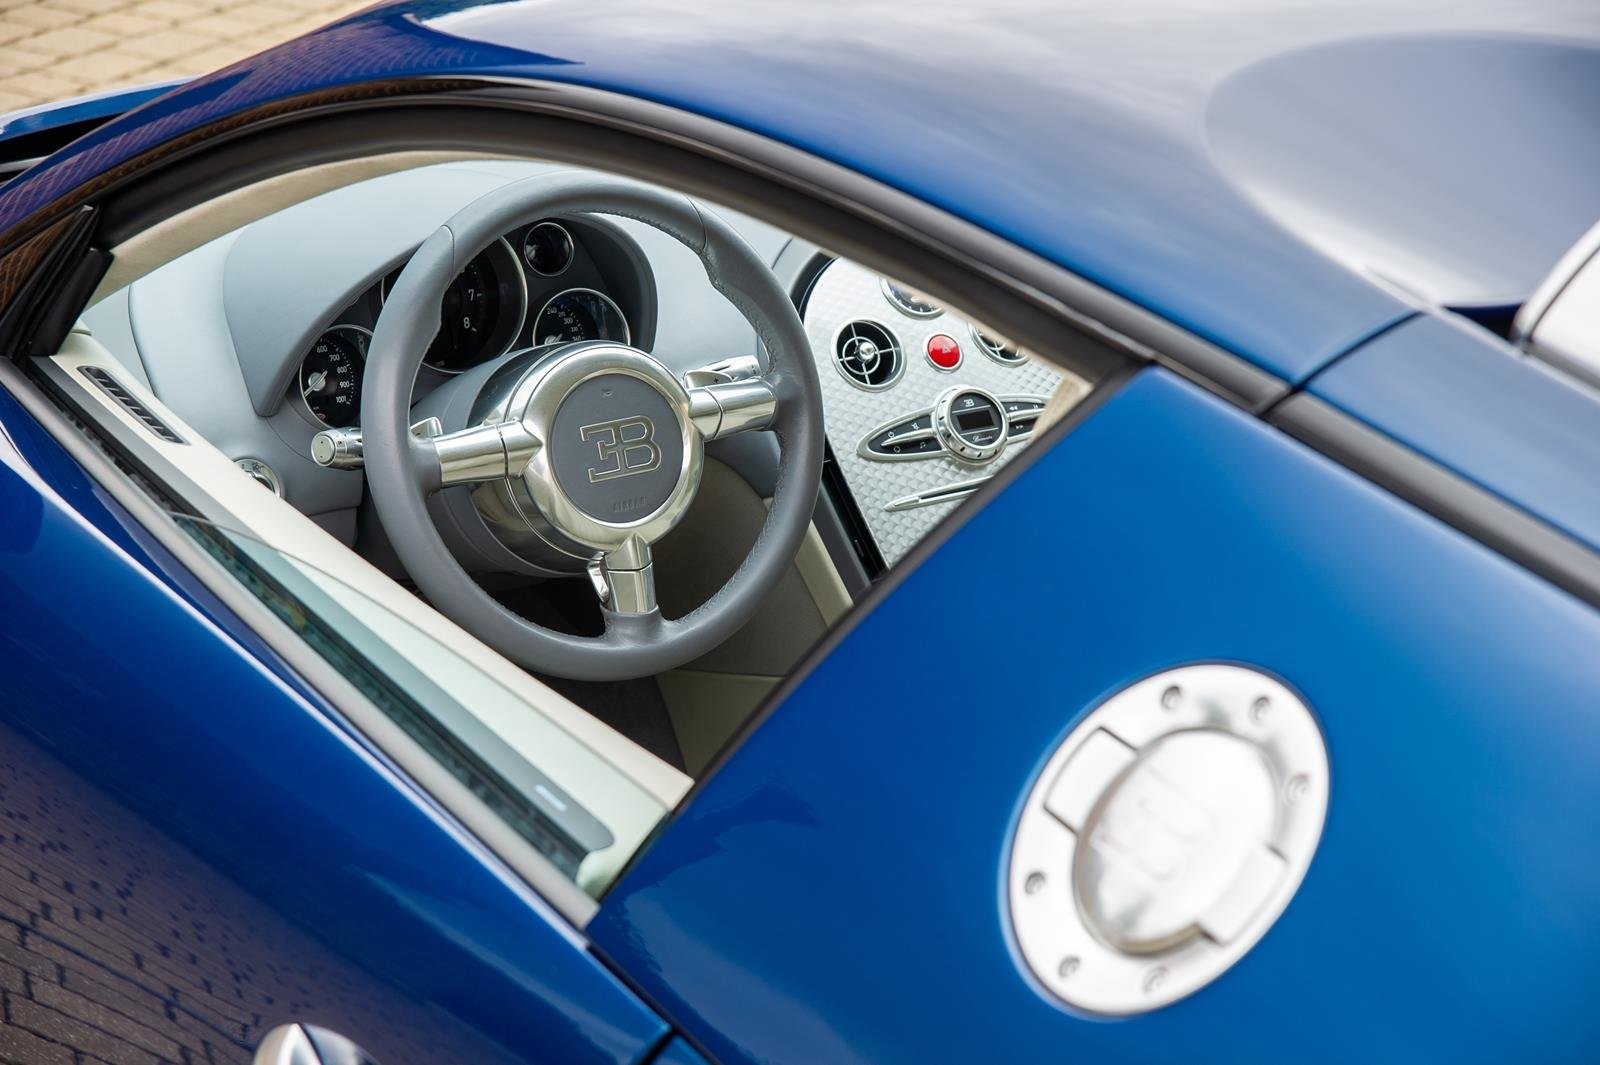 2008 Bugatti Veyron 16.4 -3 Year Bugatti Service Package Included For Sale (picture 3 of 6)